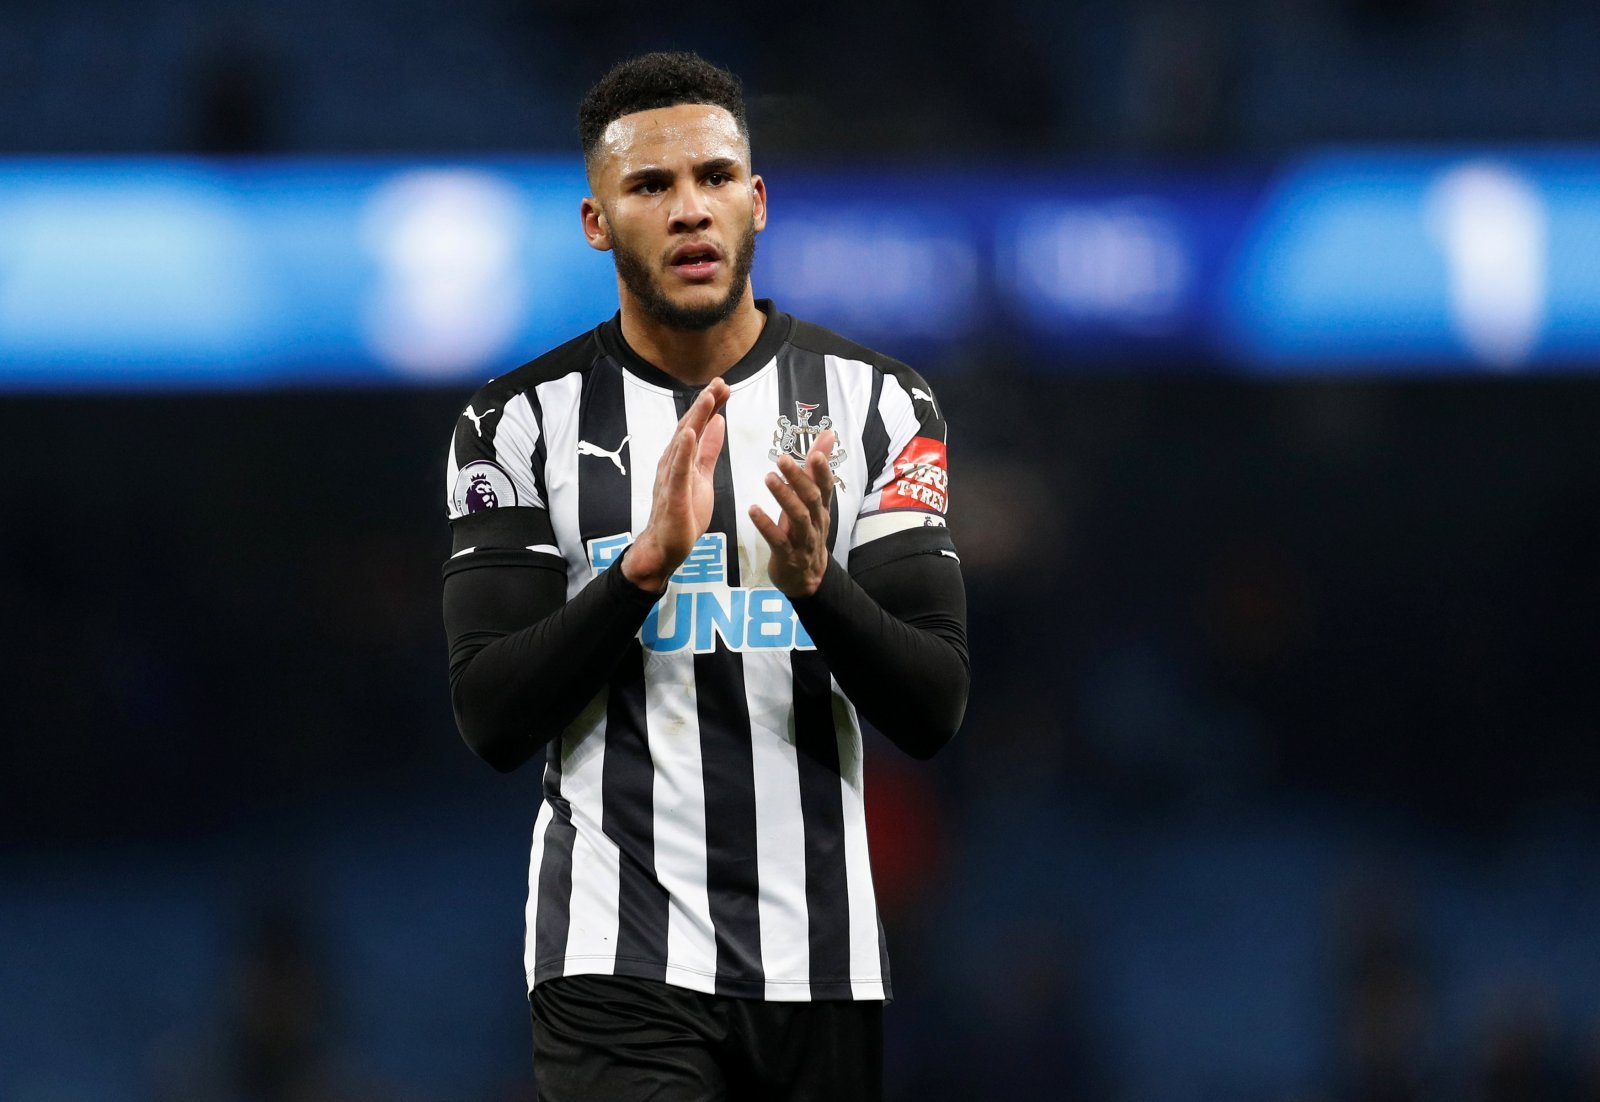 Newcastle's Schar interest should prompt Liverpool to finally land Jamaal Lascelles